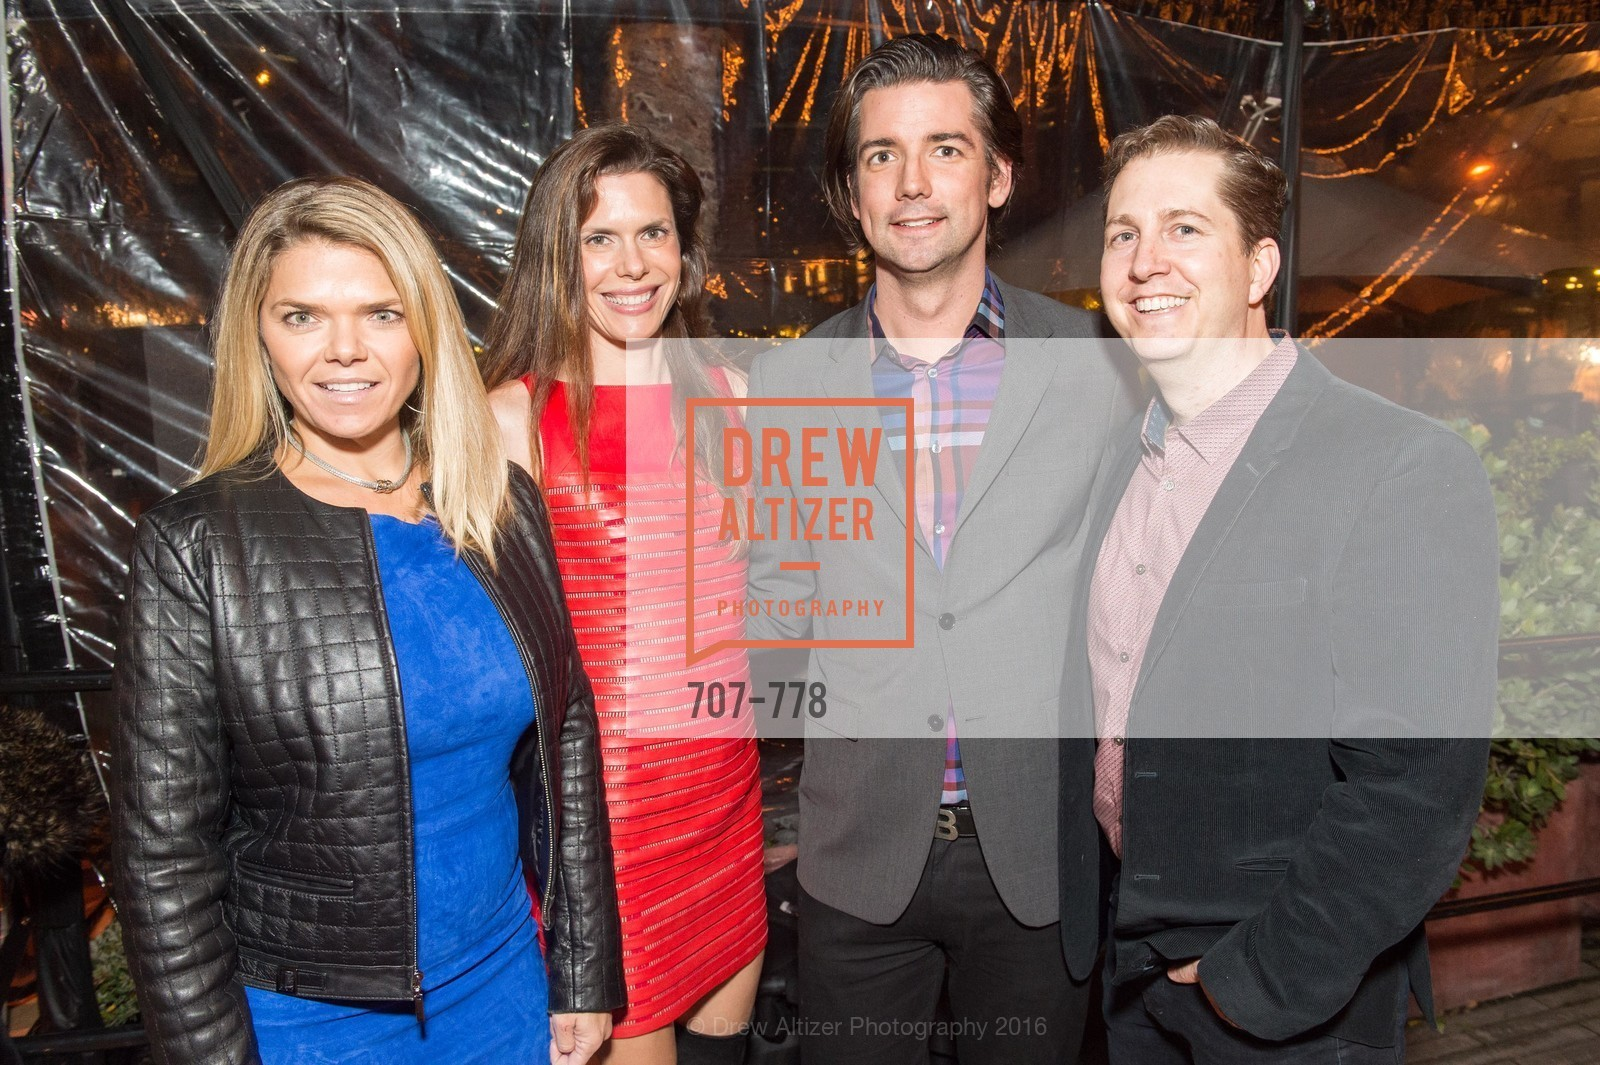 Denise Wells, Lynne Benioff, Joe Poch, Andrew Schmitt, The Bay Lights Grand Relighting Celebration, Epic Steakhouse. 369 The Embarcadero, January 29th, 2016,Drew Altizer, Drew Altizer Photography, full-service event agency, private events, San Francisco photographer, photographer California